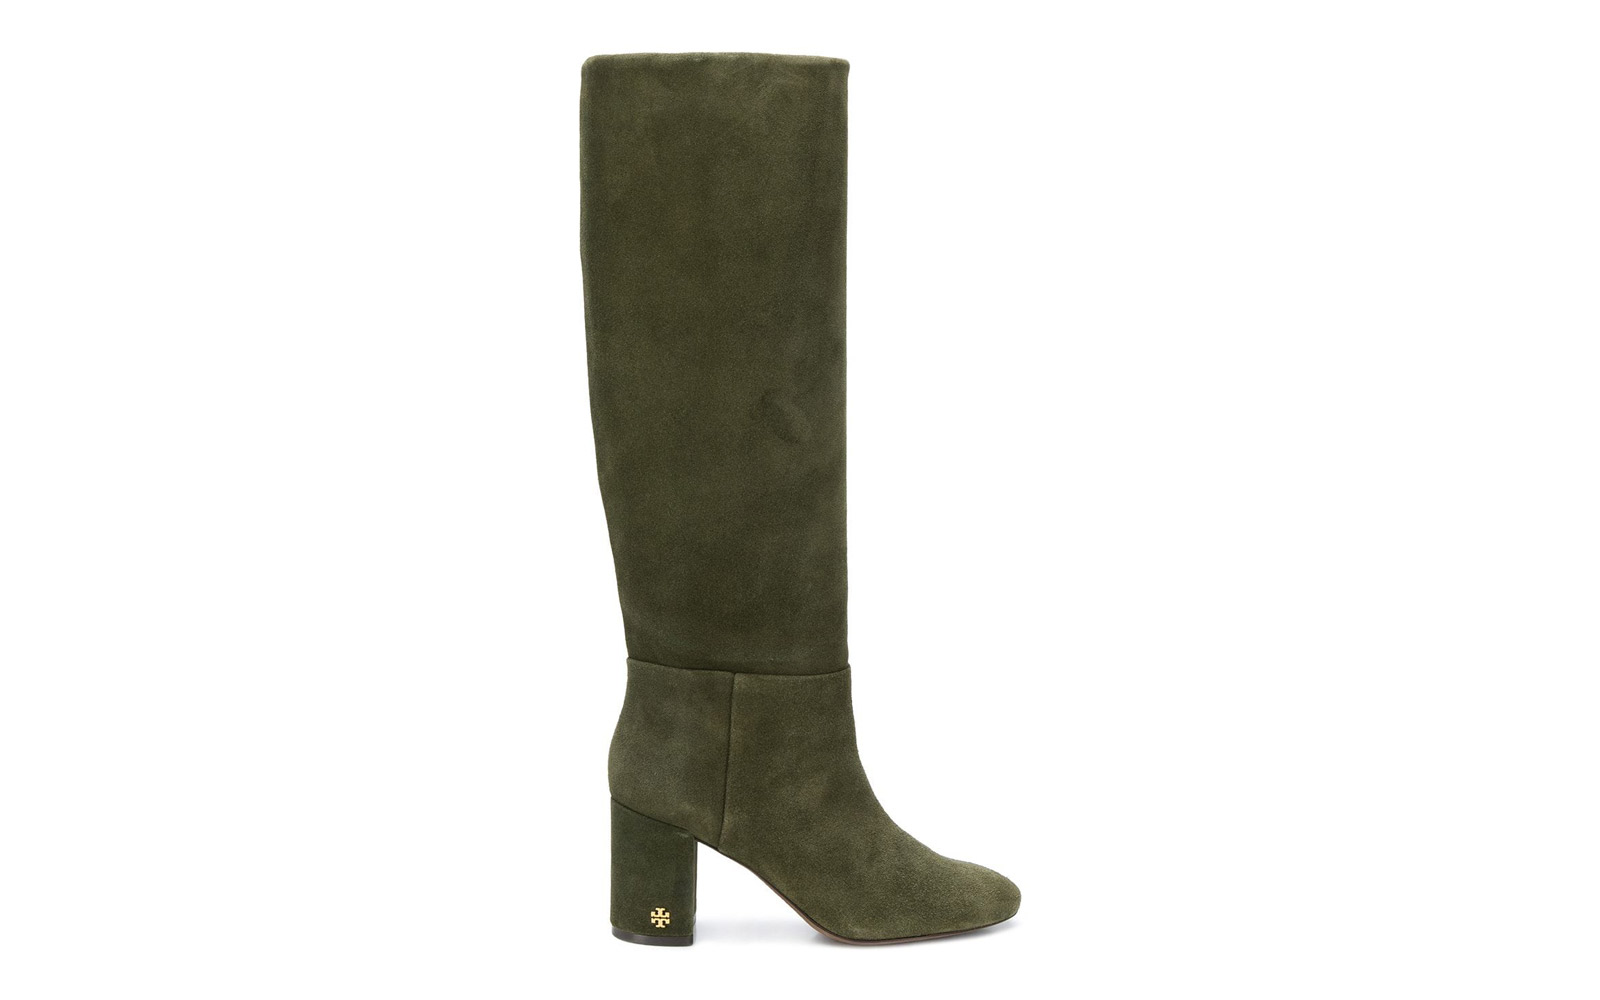 suede green boots meghan markle